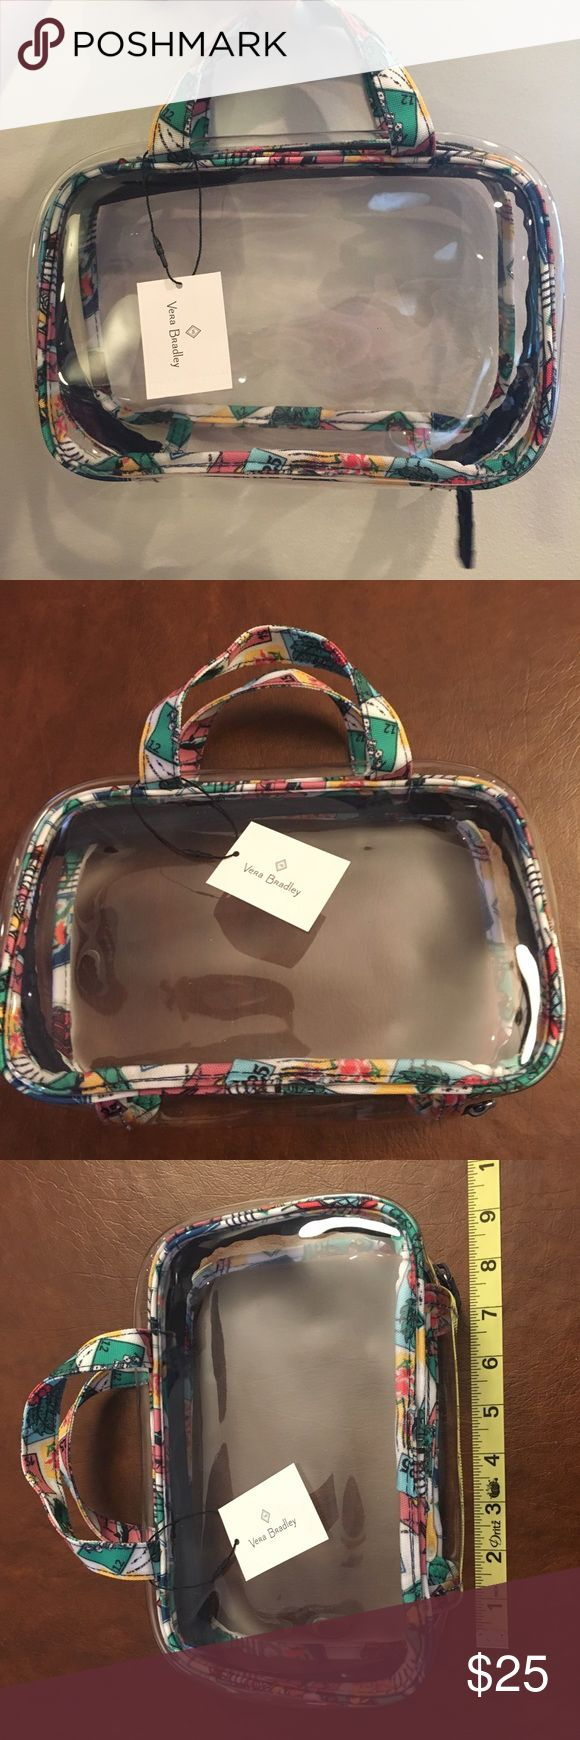 NWT Vera Bradley Clear Bag NWT Vera Bradley clear cosmetic bag. This was a GWP and does not include the other products that were in the bag. Just selling bag pictured above. Perfect for travel! Vera Bradley Bags Cosmetic Bags & Cases